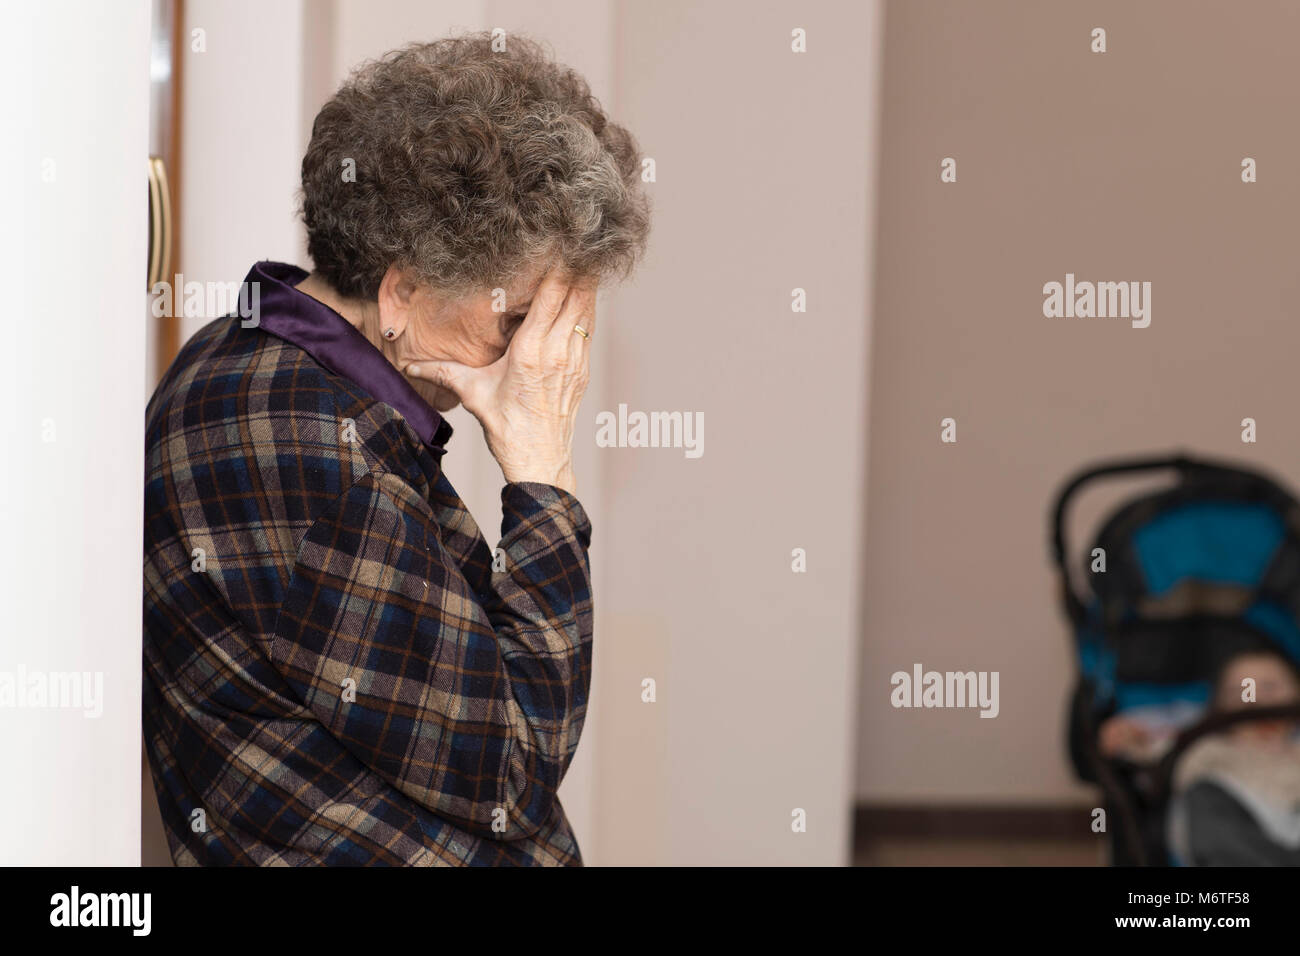 Old woman shows her worries about baby in the trolley - Stock Image